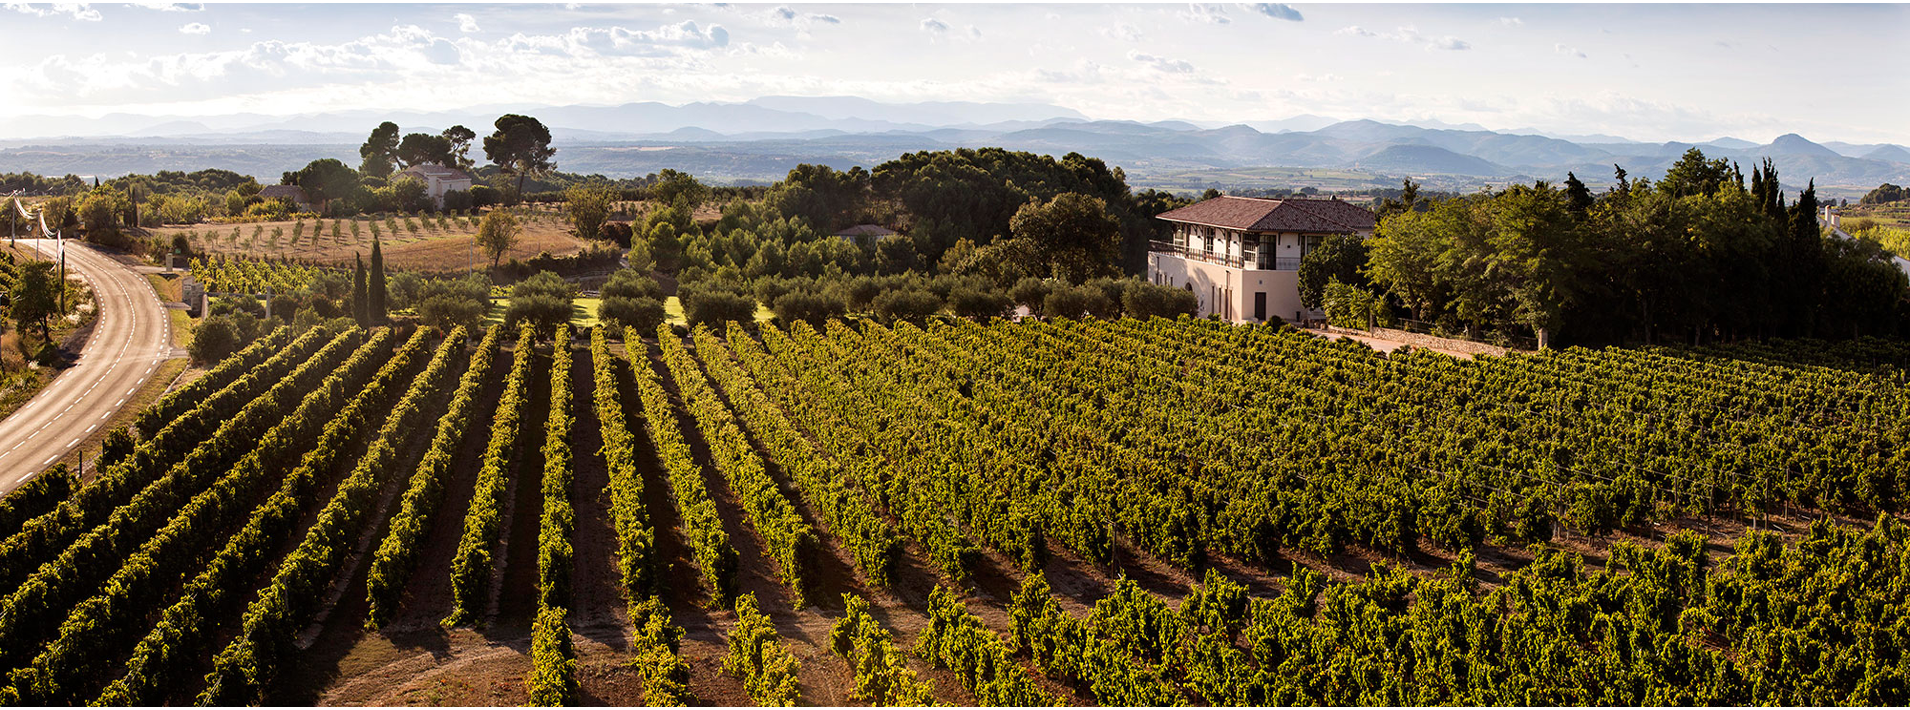 Stunning image of 'Domaine Paul Mas' and surrounding vineyards